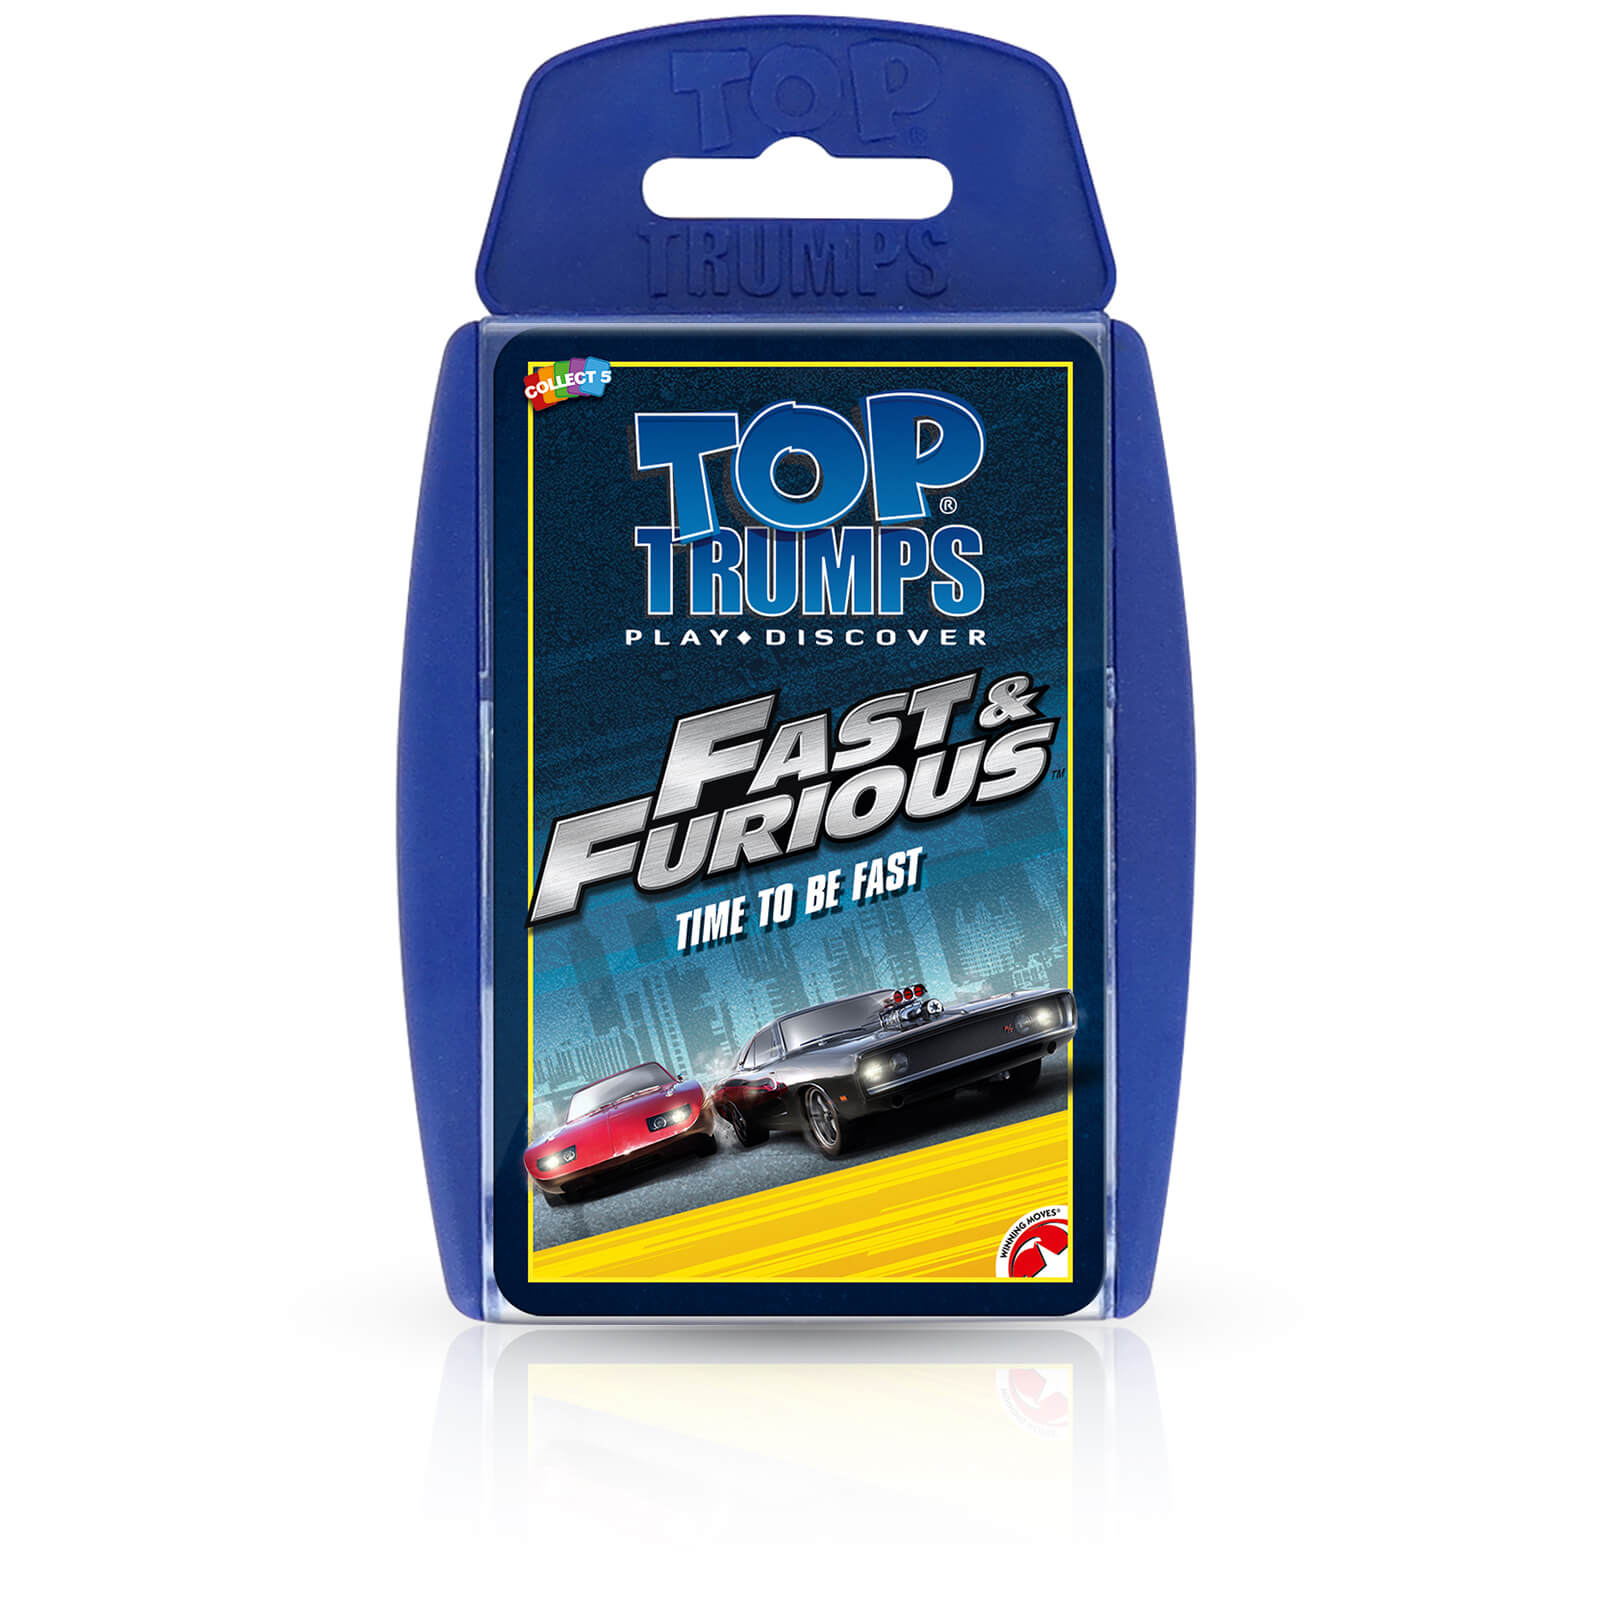 Top Trumps - Fast & Furious